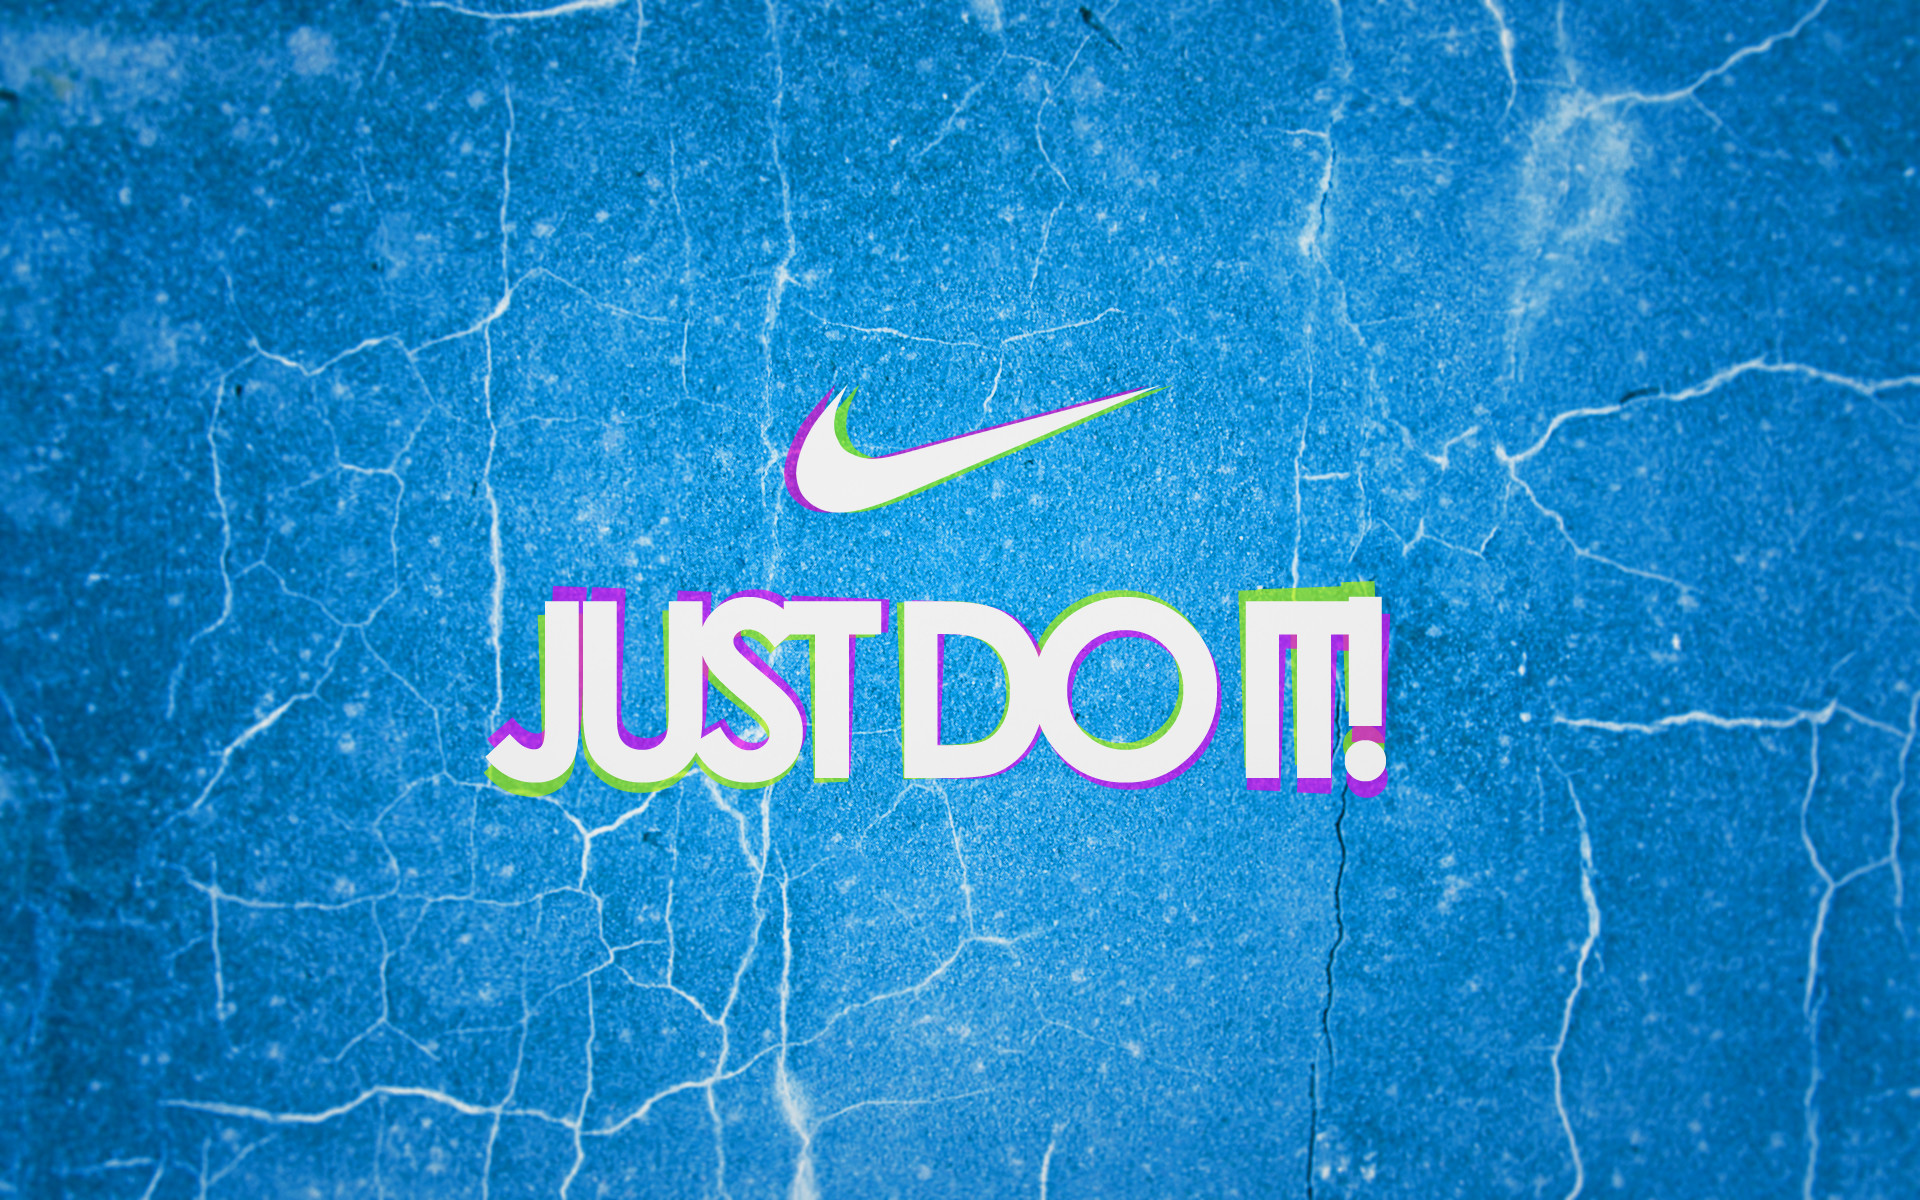 1920x1200 Nike logo wallpaper free download